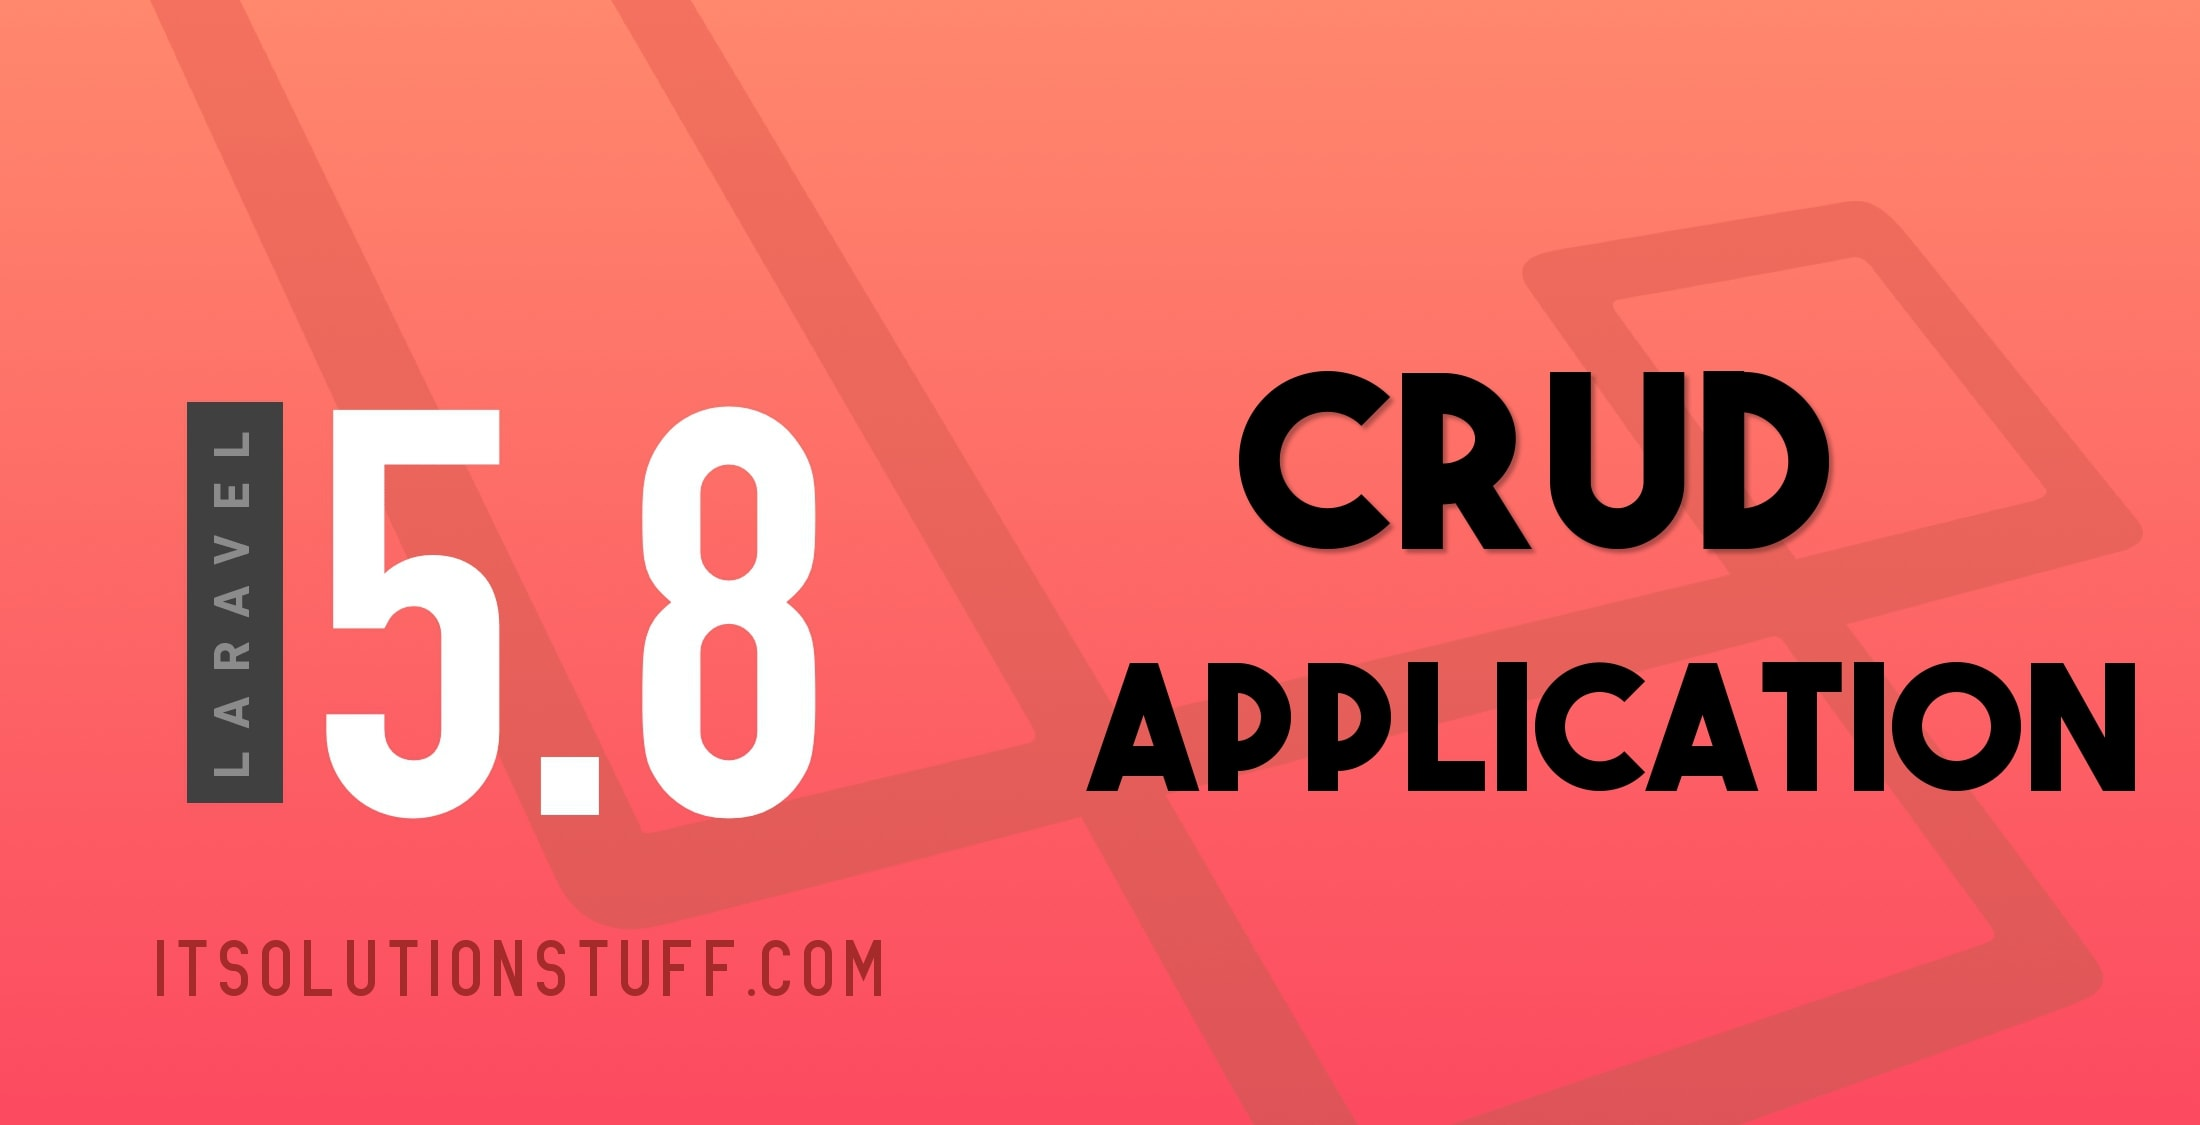 Laravel 5.8 CRUD (Create Read Update Delete) Tutorial For Beginners